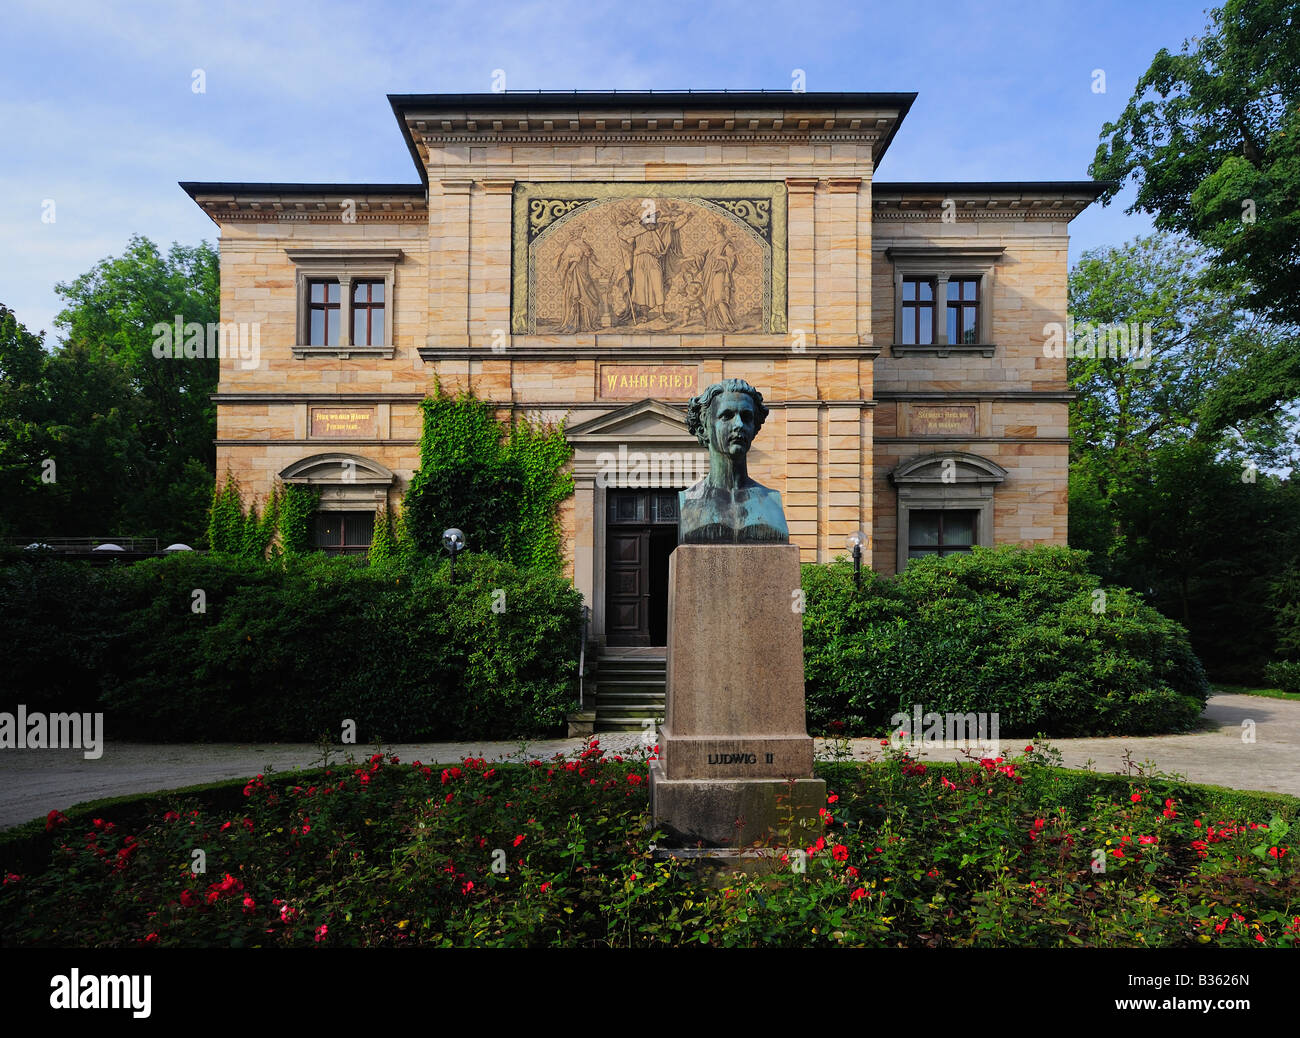 Villa Wahnfried Wagner House in Bayreuth Bavaria Germany - Stock Image